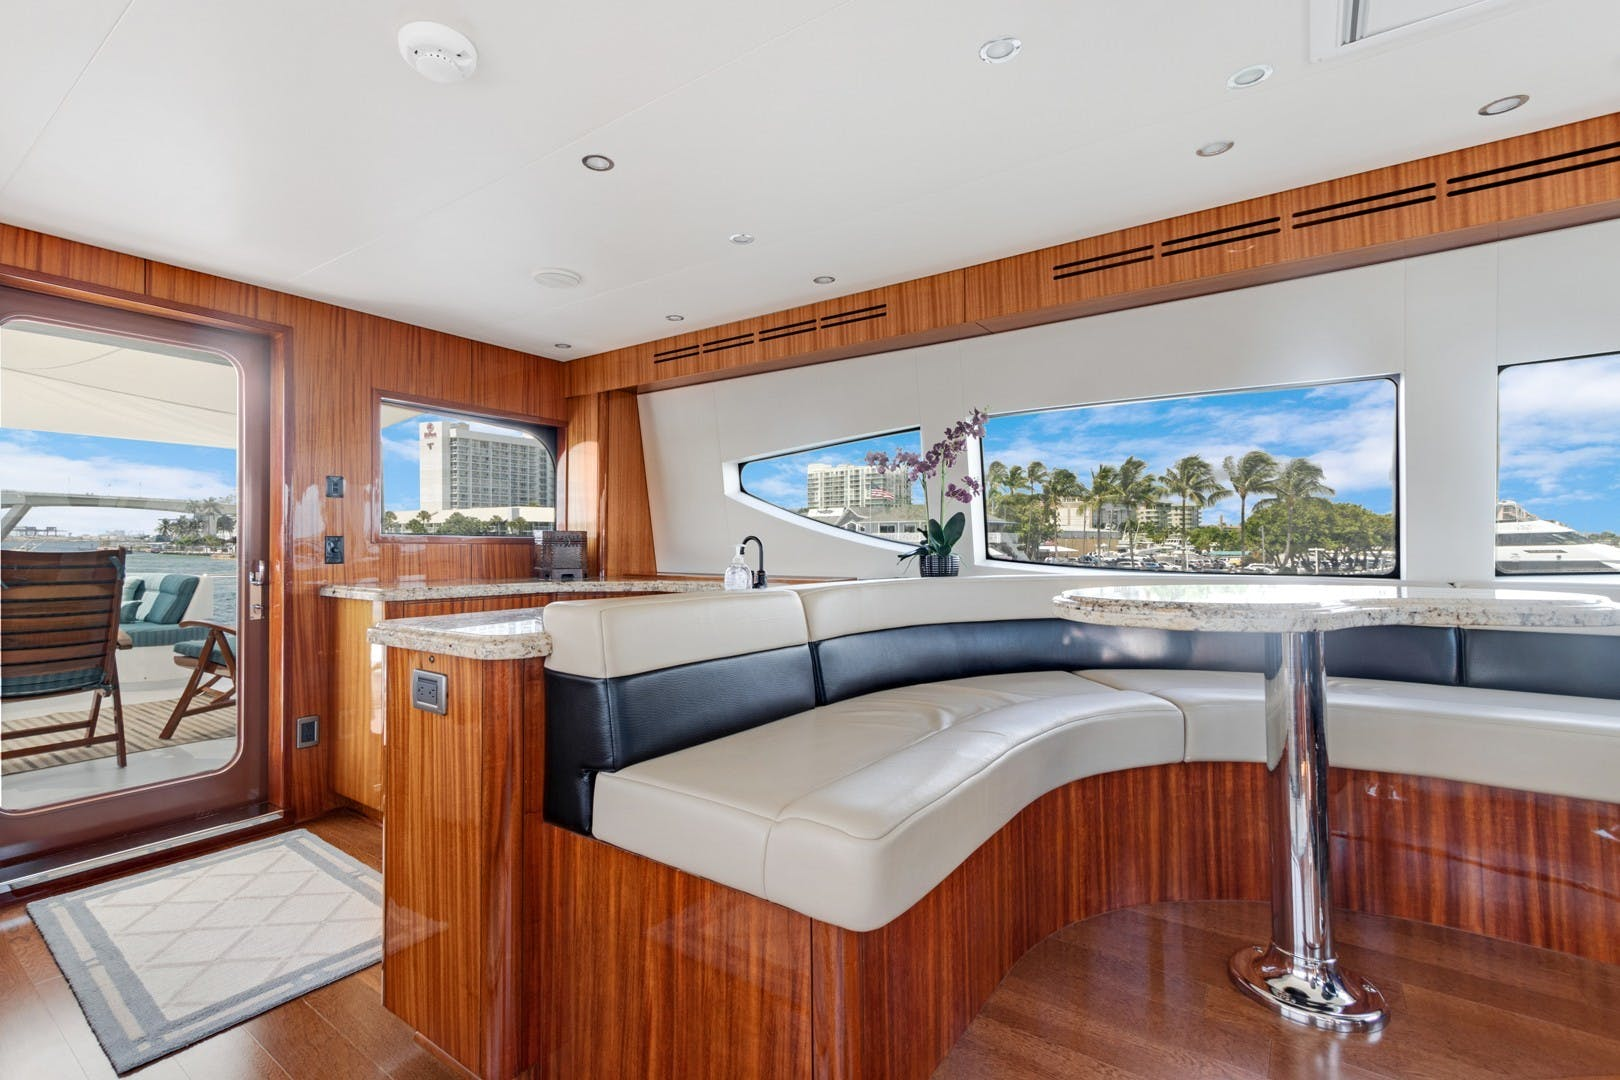 2012 Hatteras 80' Enclosed Bridge Motor Yacht OBSESSION   Picture 3 of 76